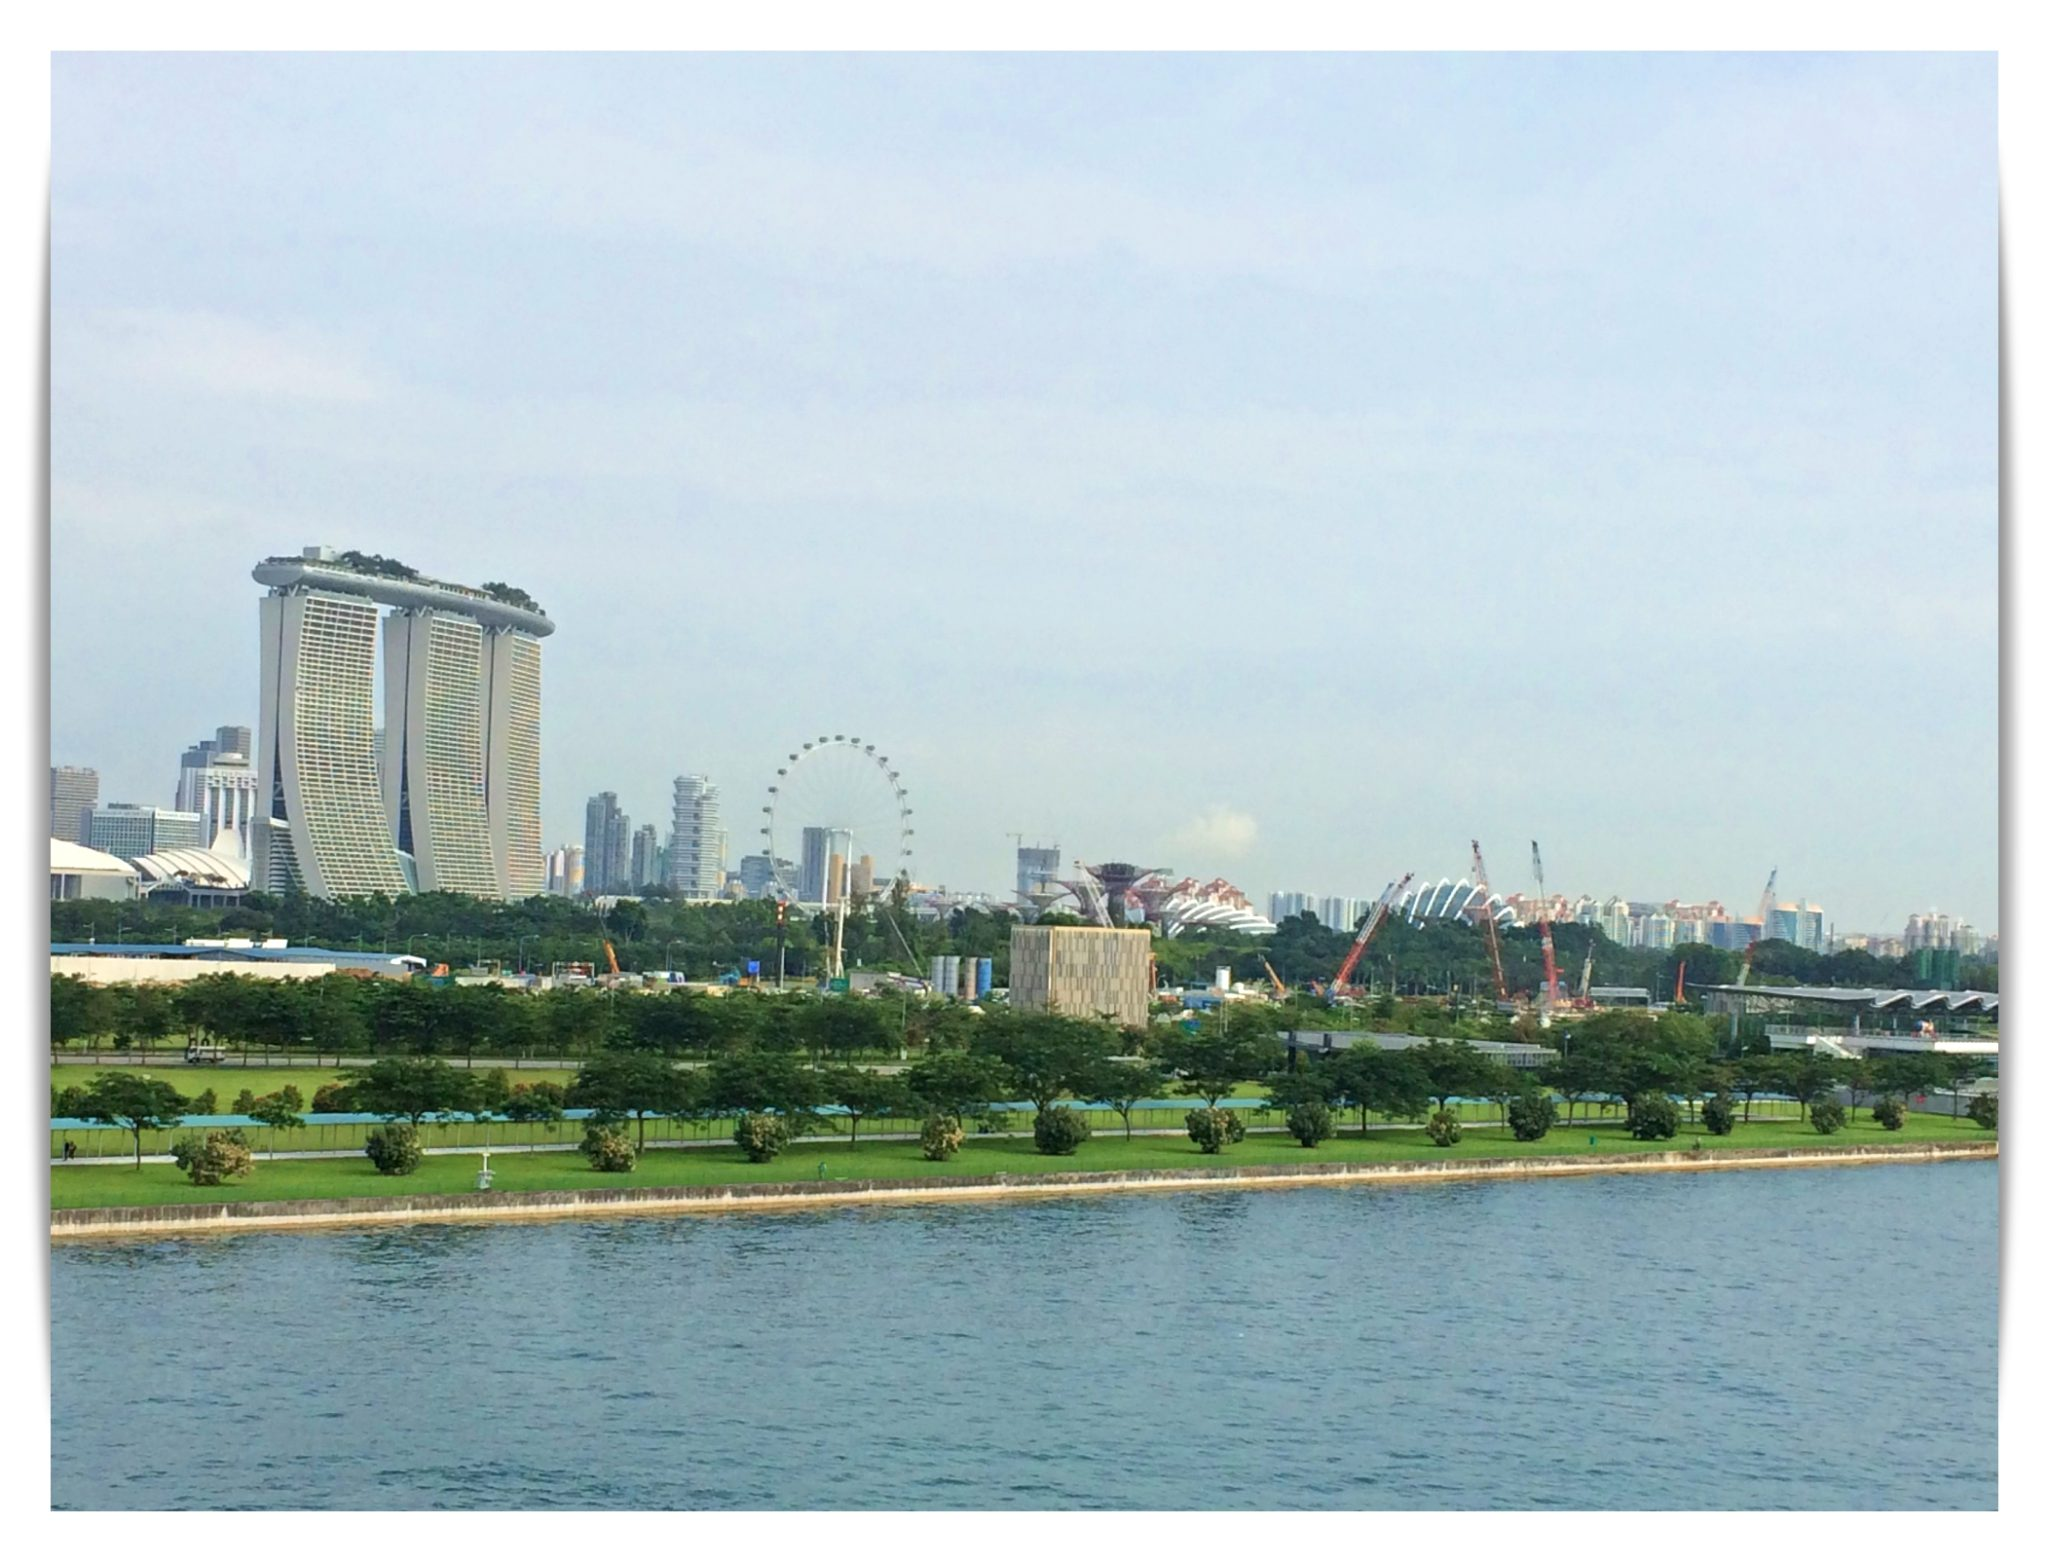 Marina Bay Sands from Genting Dream